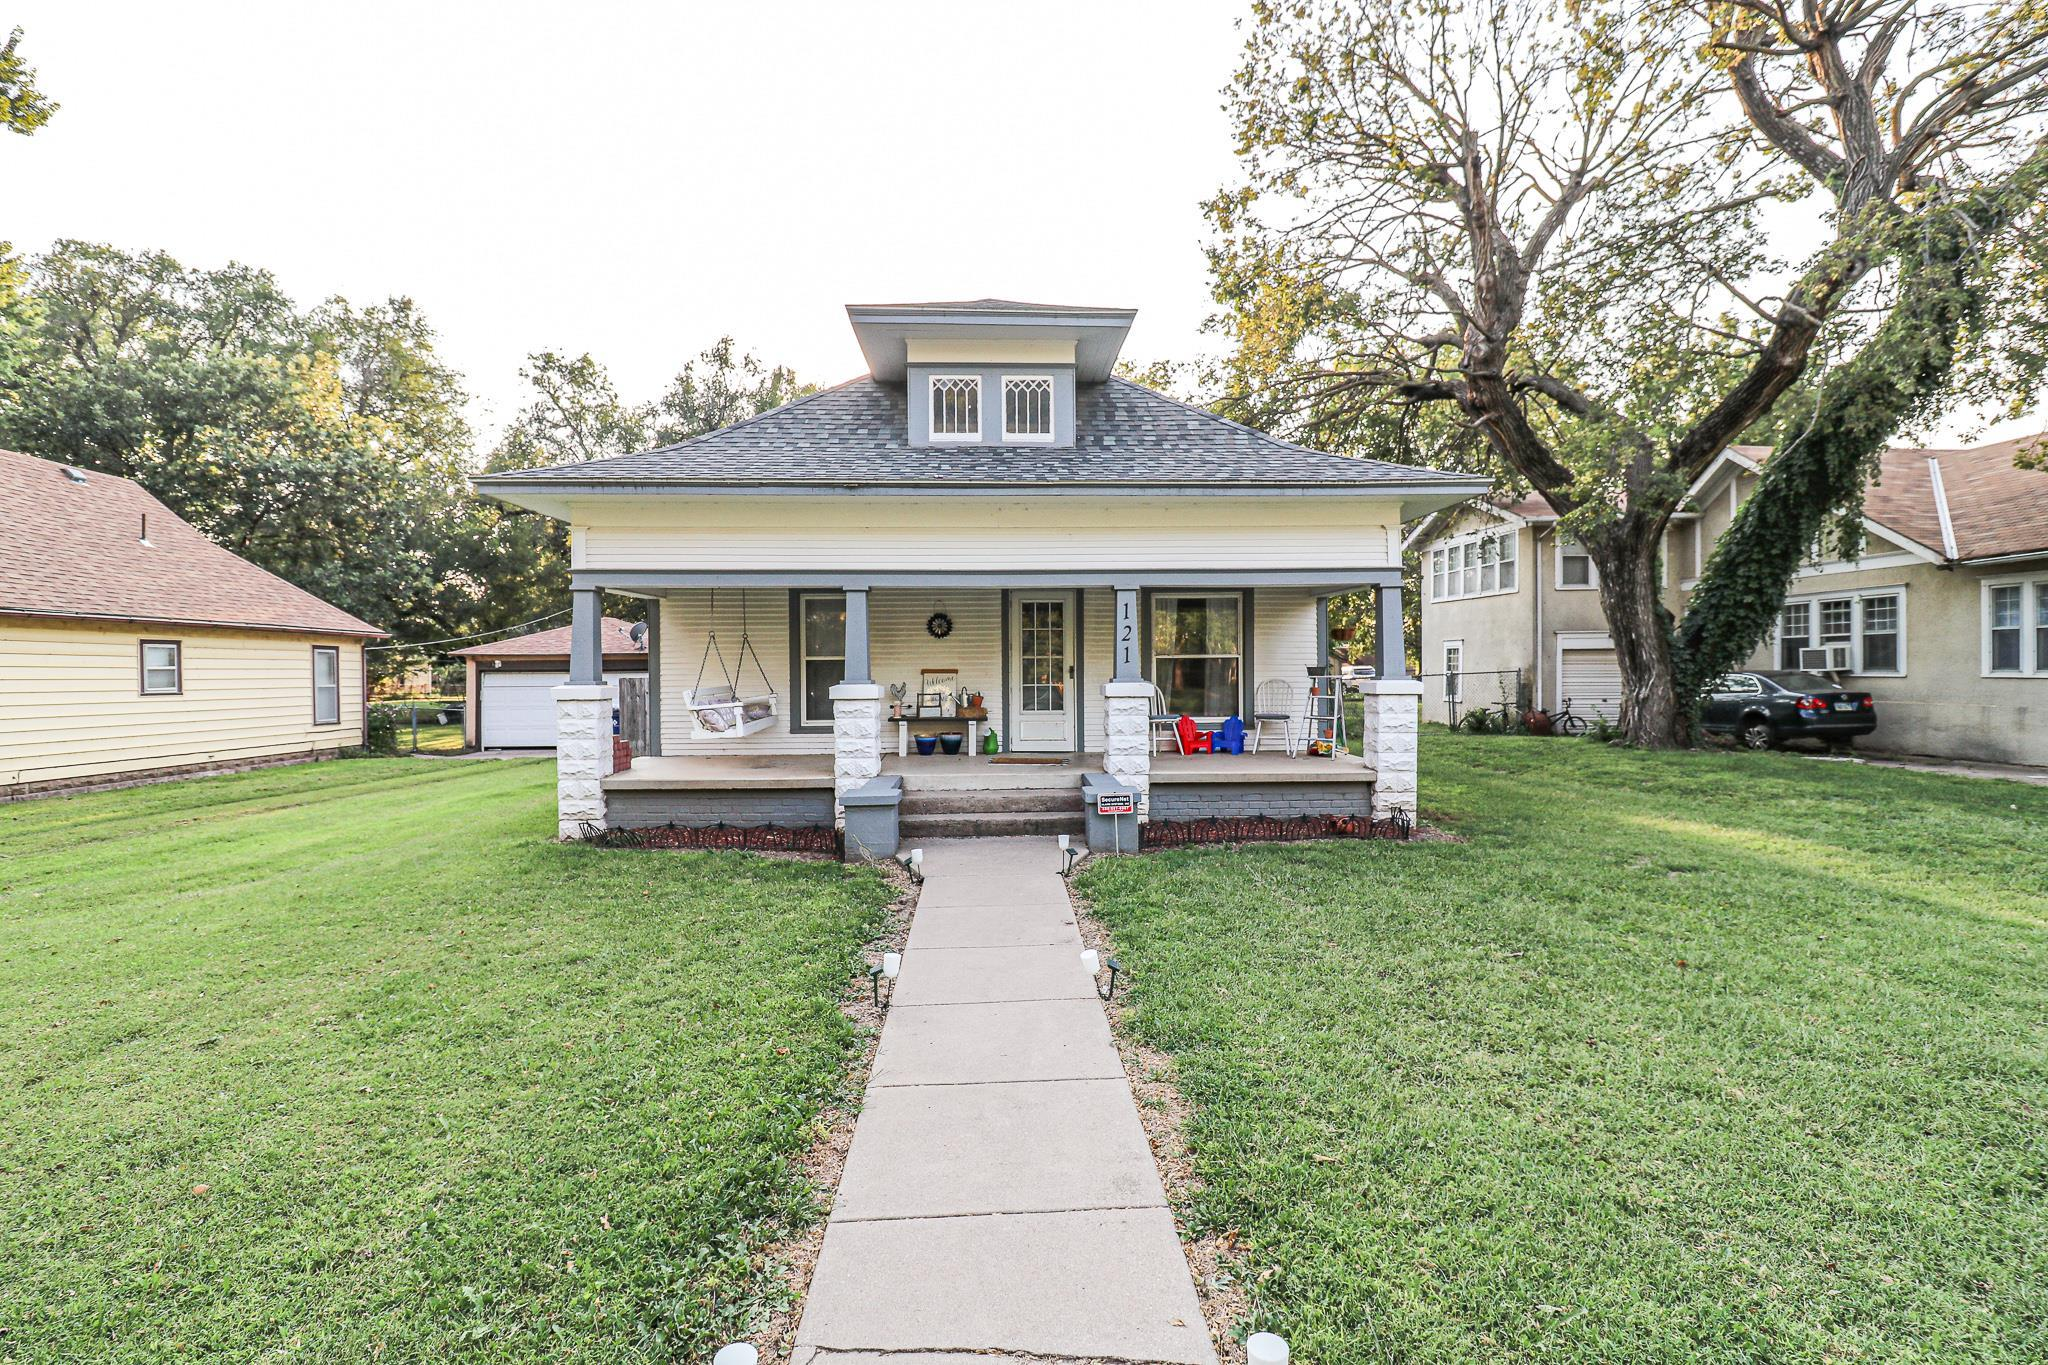 This charming bungalow in the heart of Clearwater is full of character and move-in ready! You enter